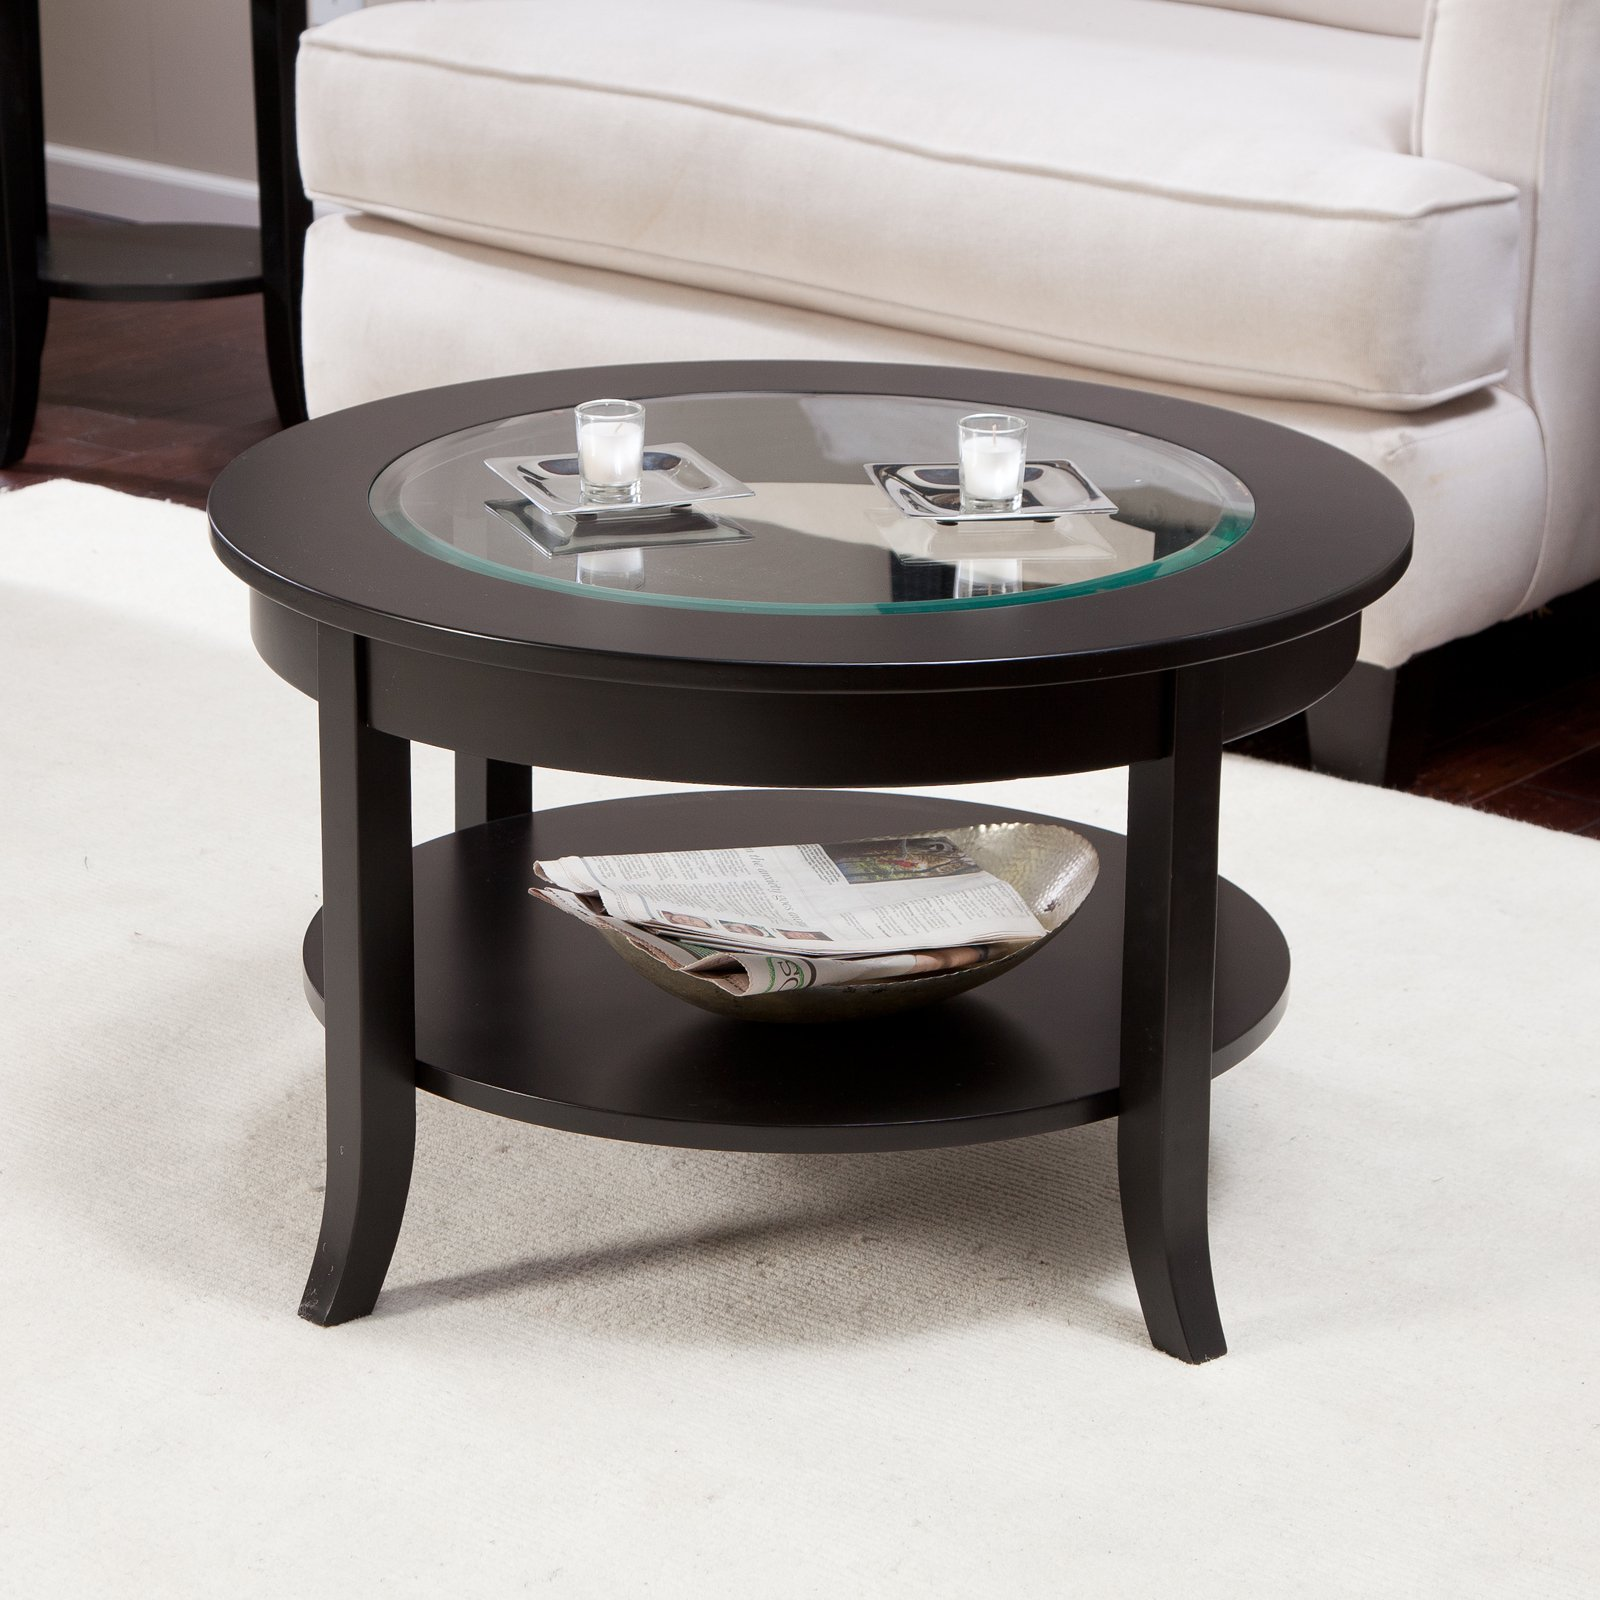 2018 Popular New Small Round Glass Top Coffee Table